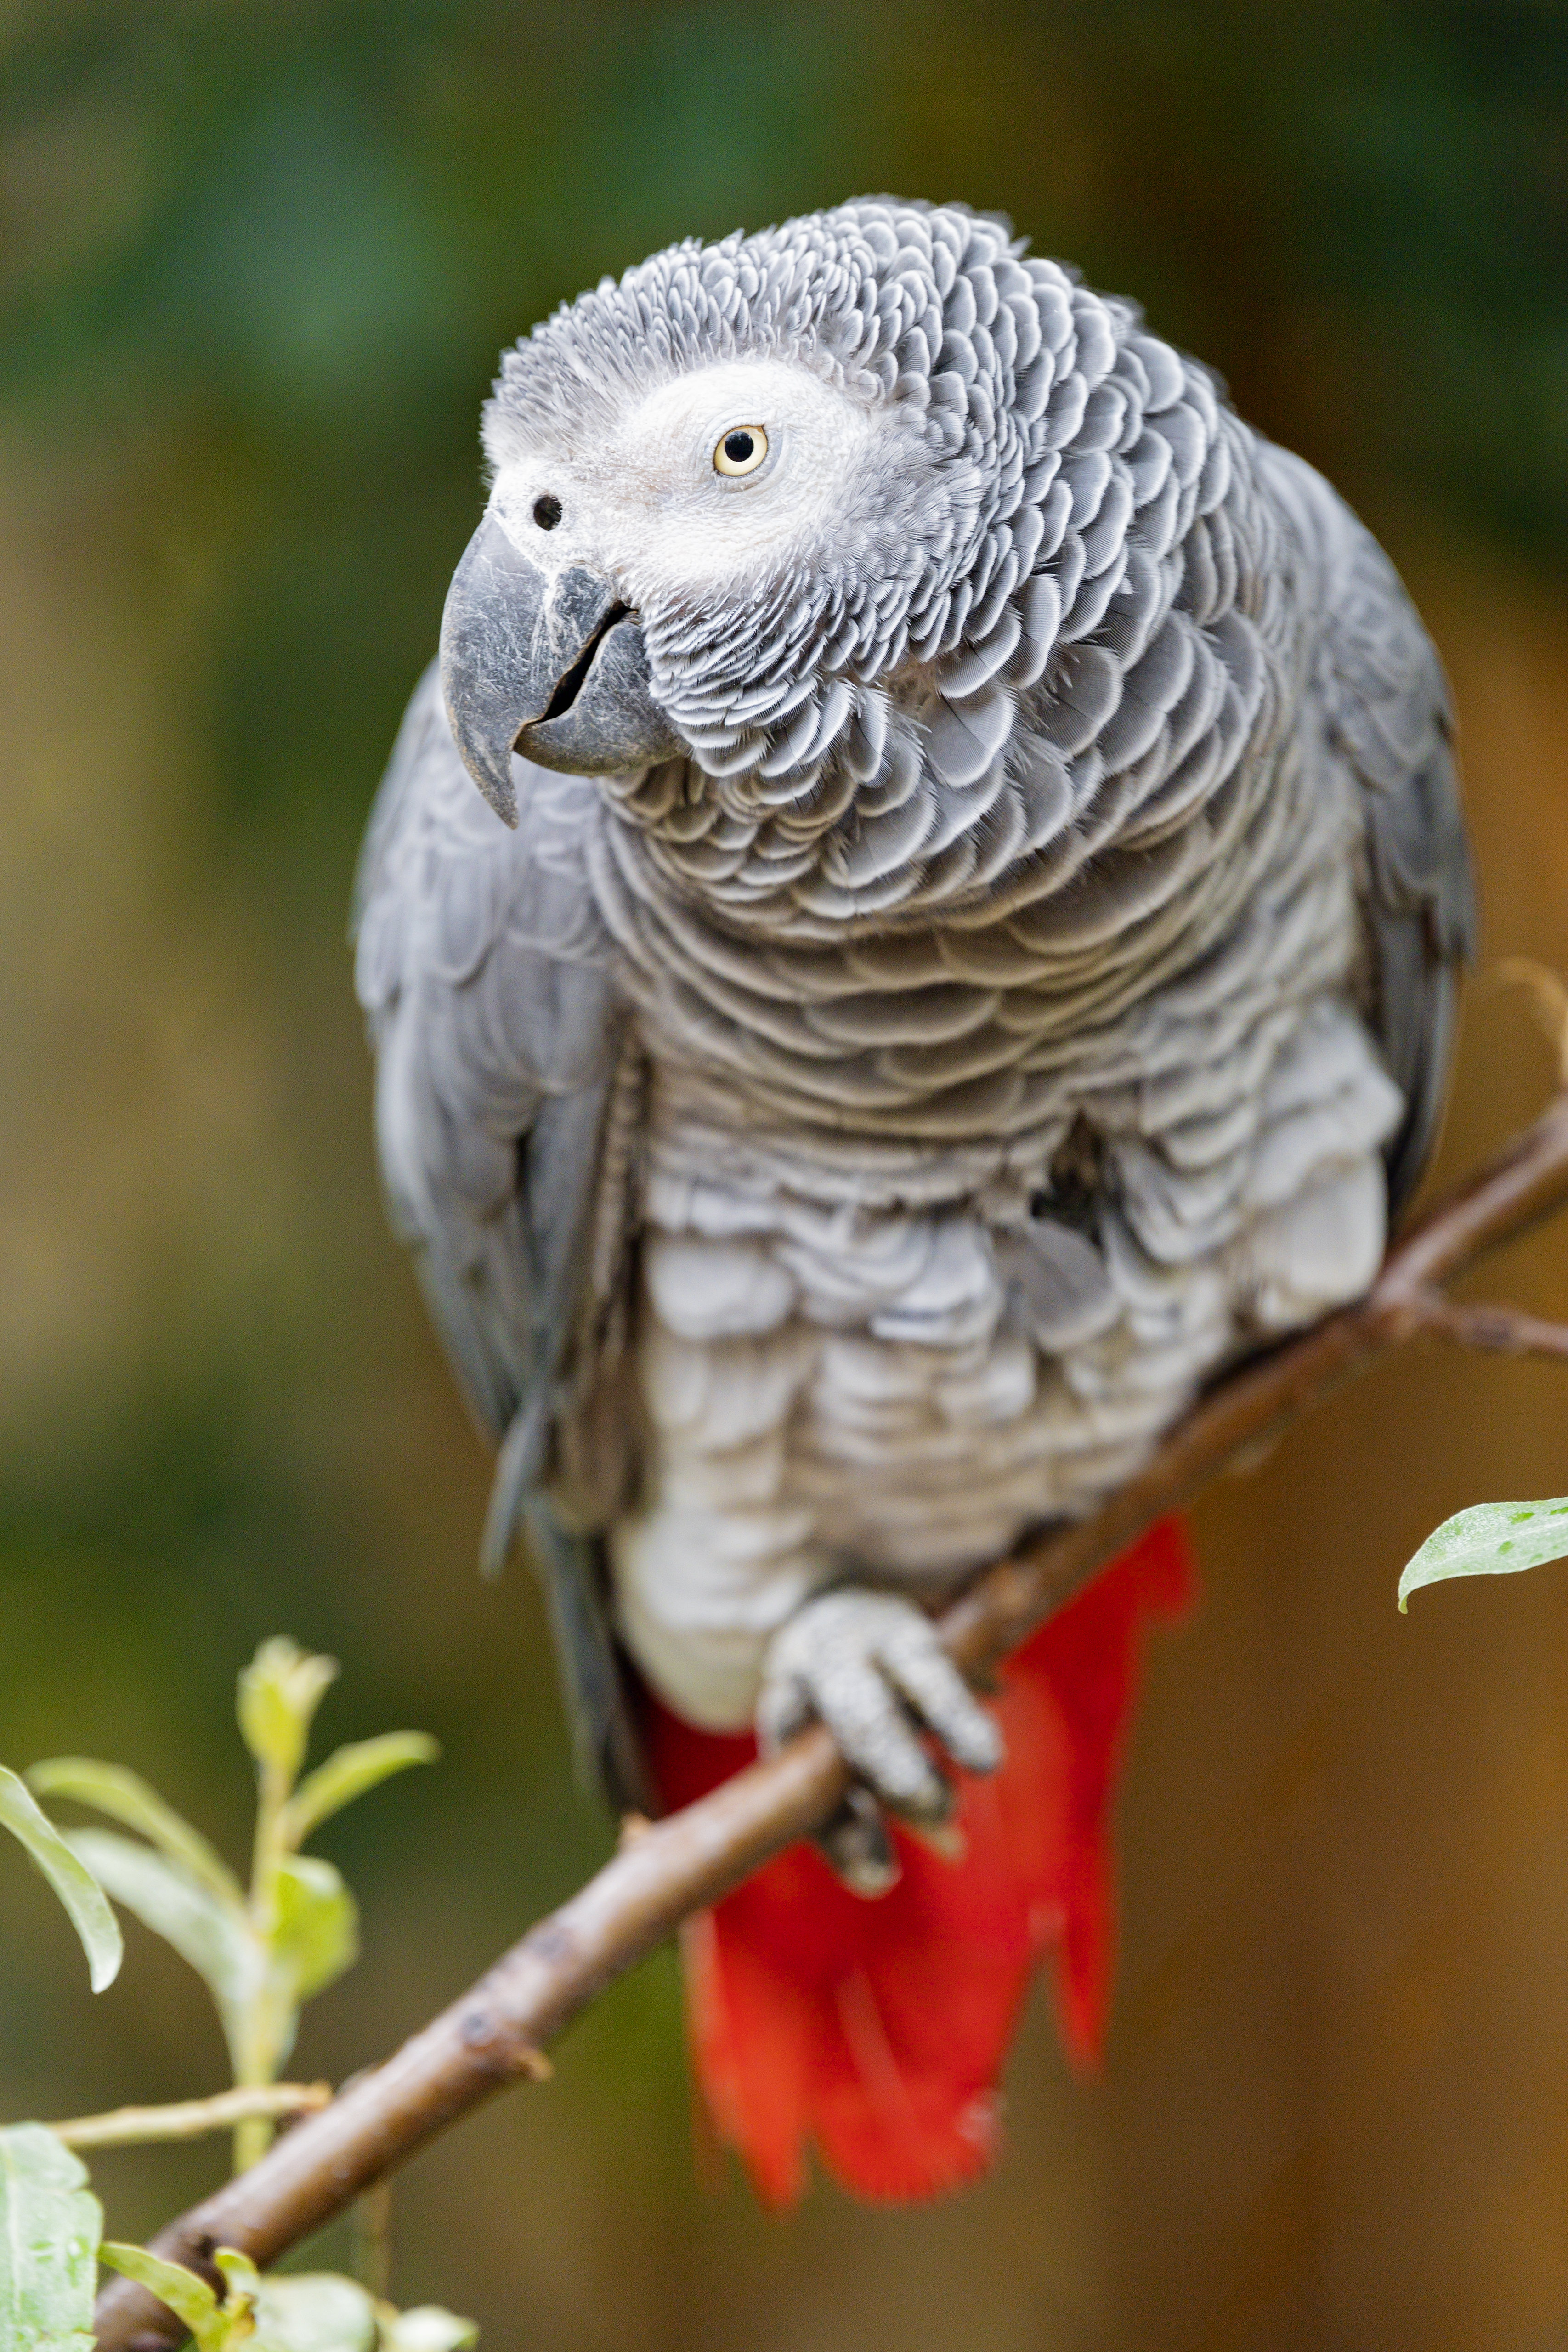 137316 download wallpaper Animals, Macaw, Parrots, Bird, Sight, Opinion, Branch screensavers and pictures for free